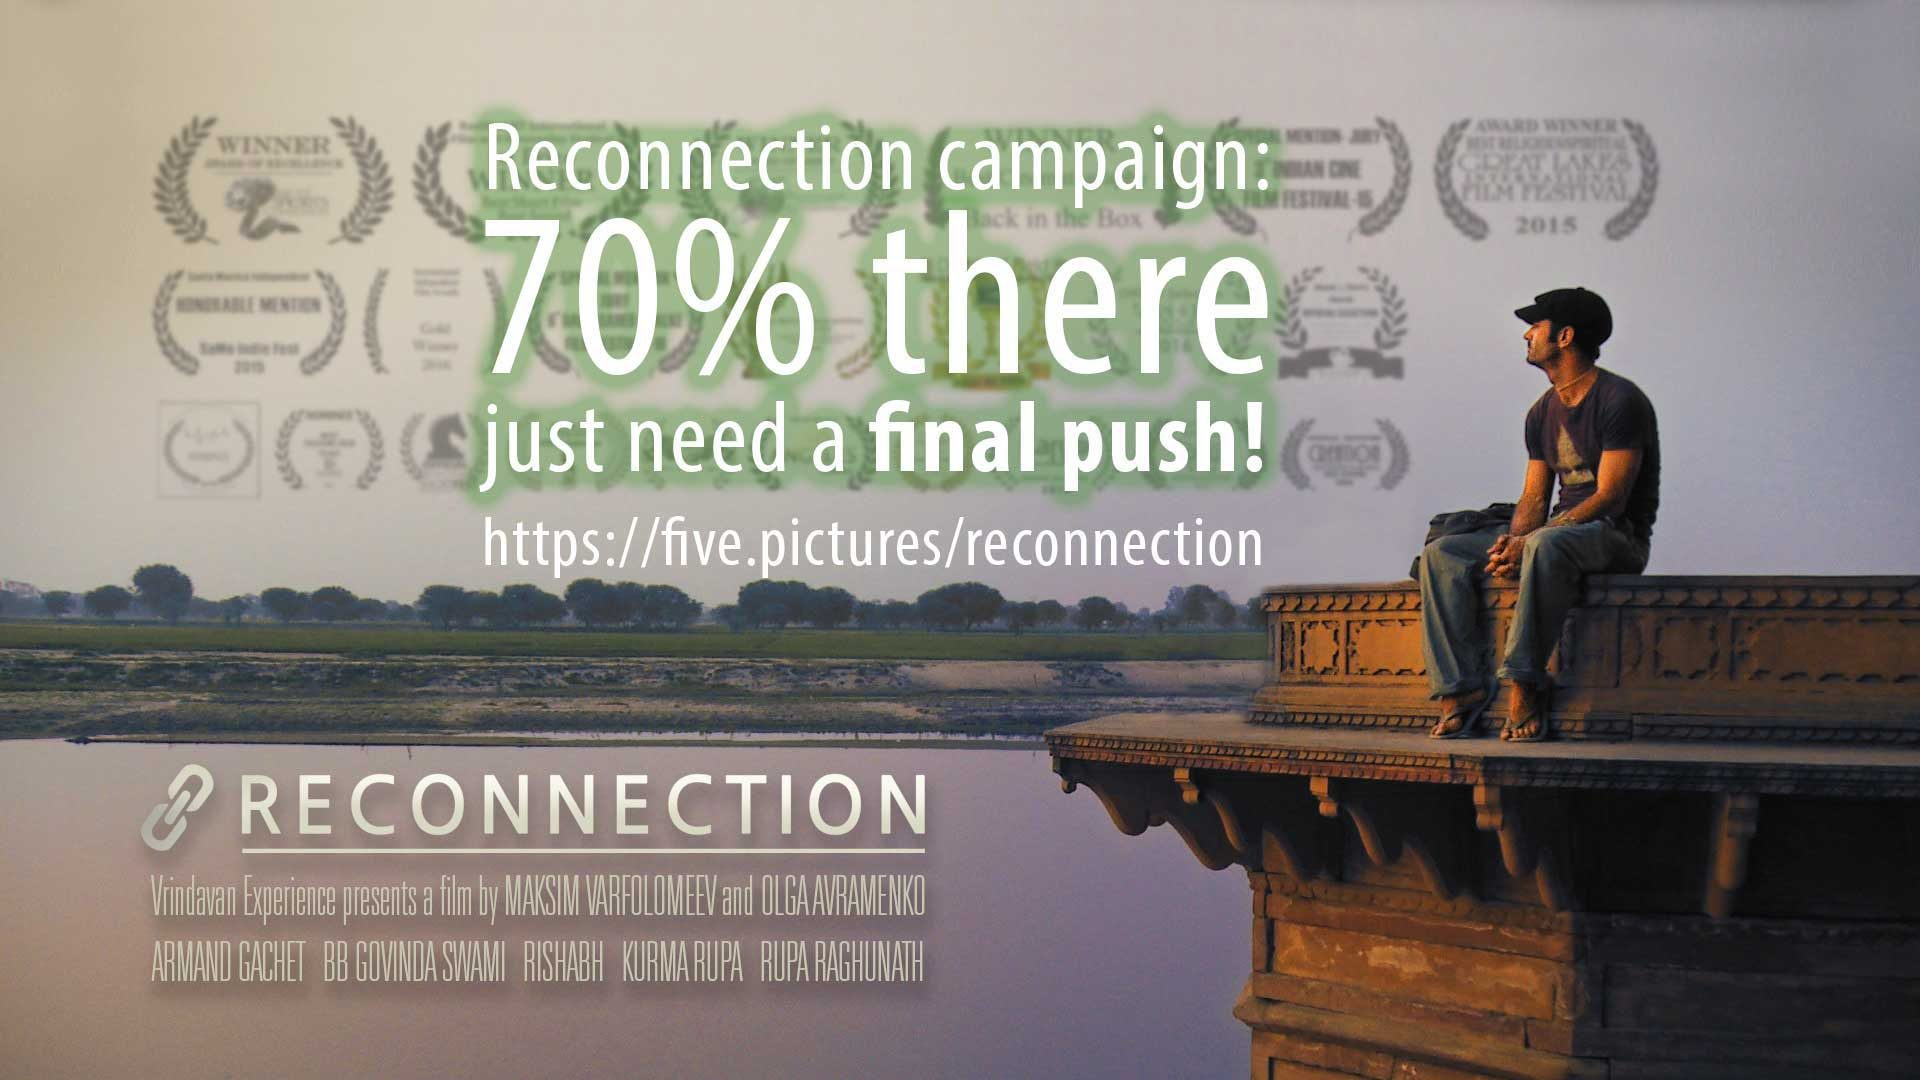 Reconnection campaign: 70% there, just need a final push! Reconnection, a multi-award winning film, set in Vrindavan, gets closer to its release.